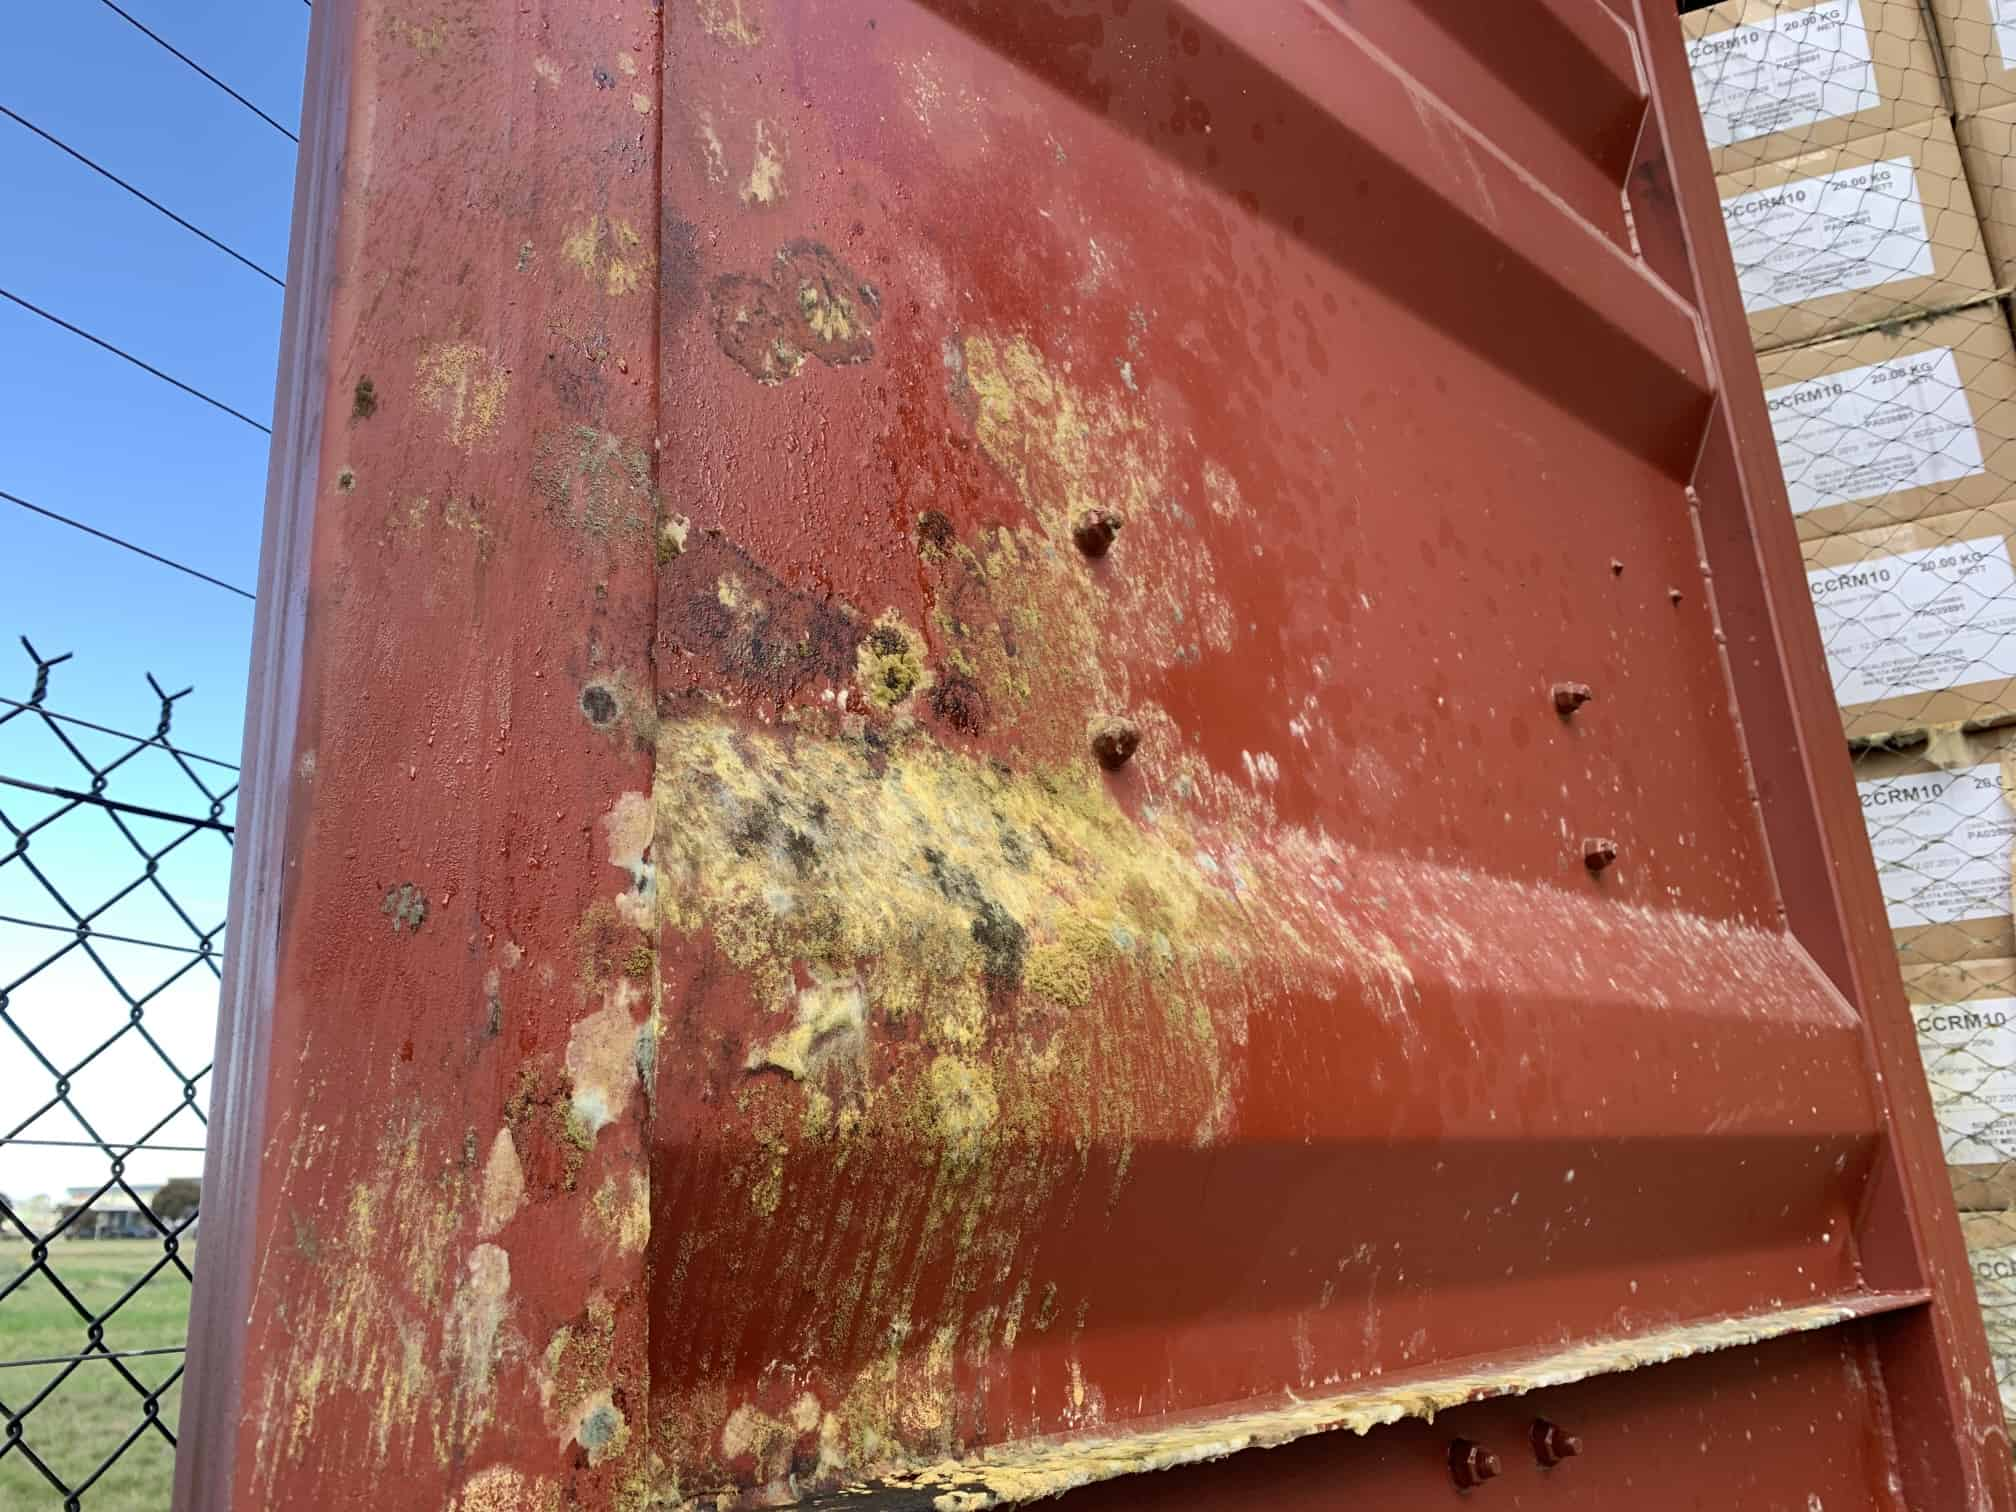 green mould on red metal door